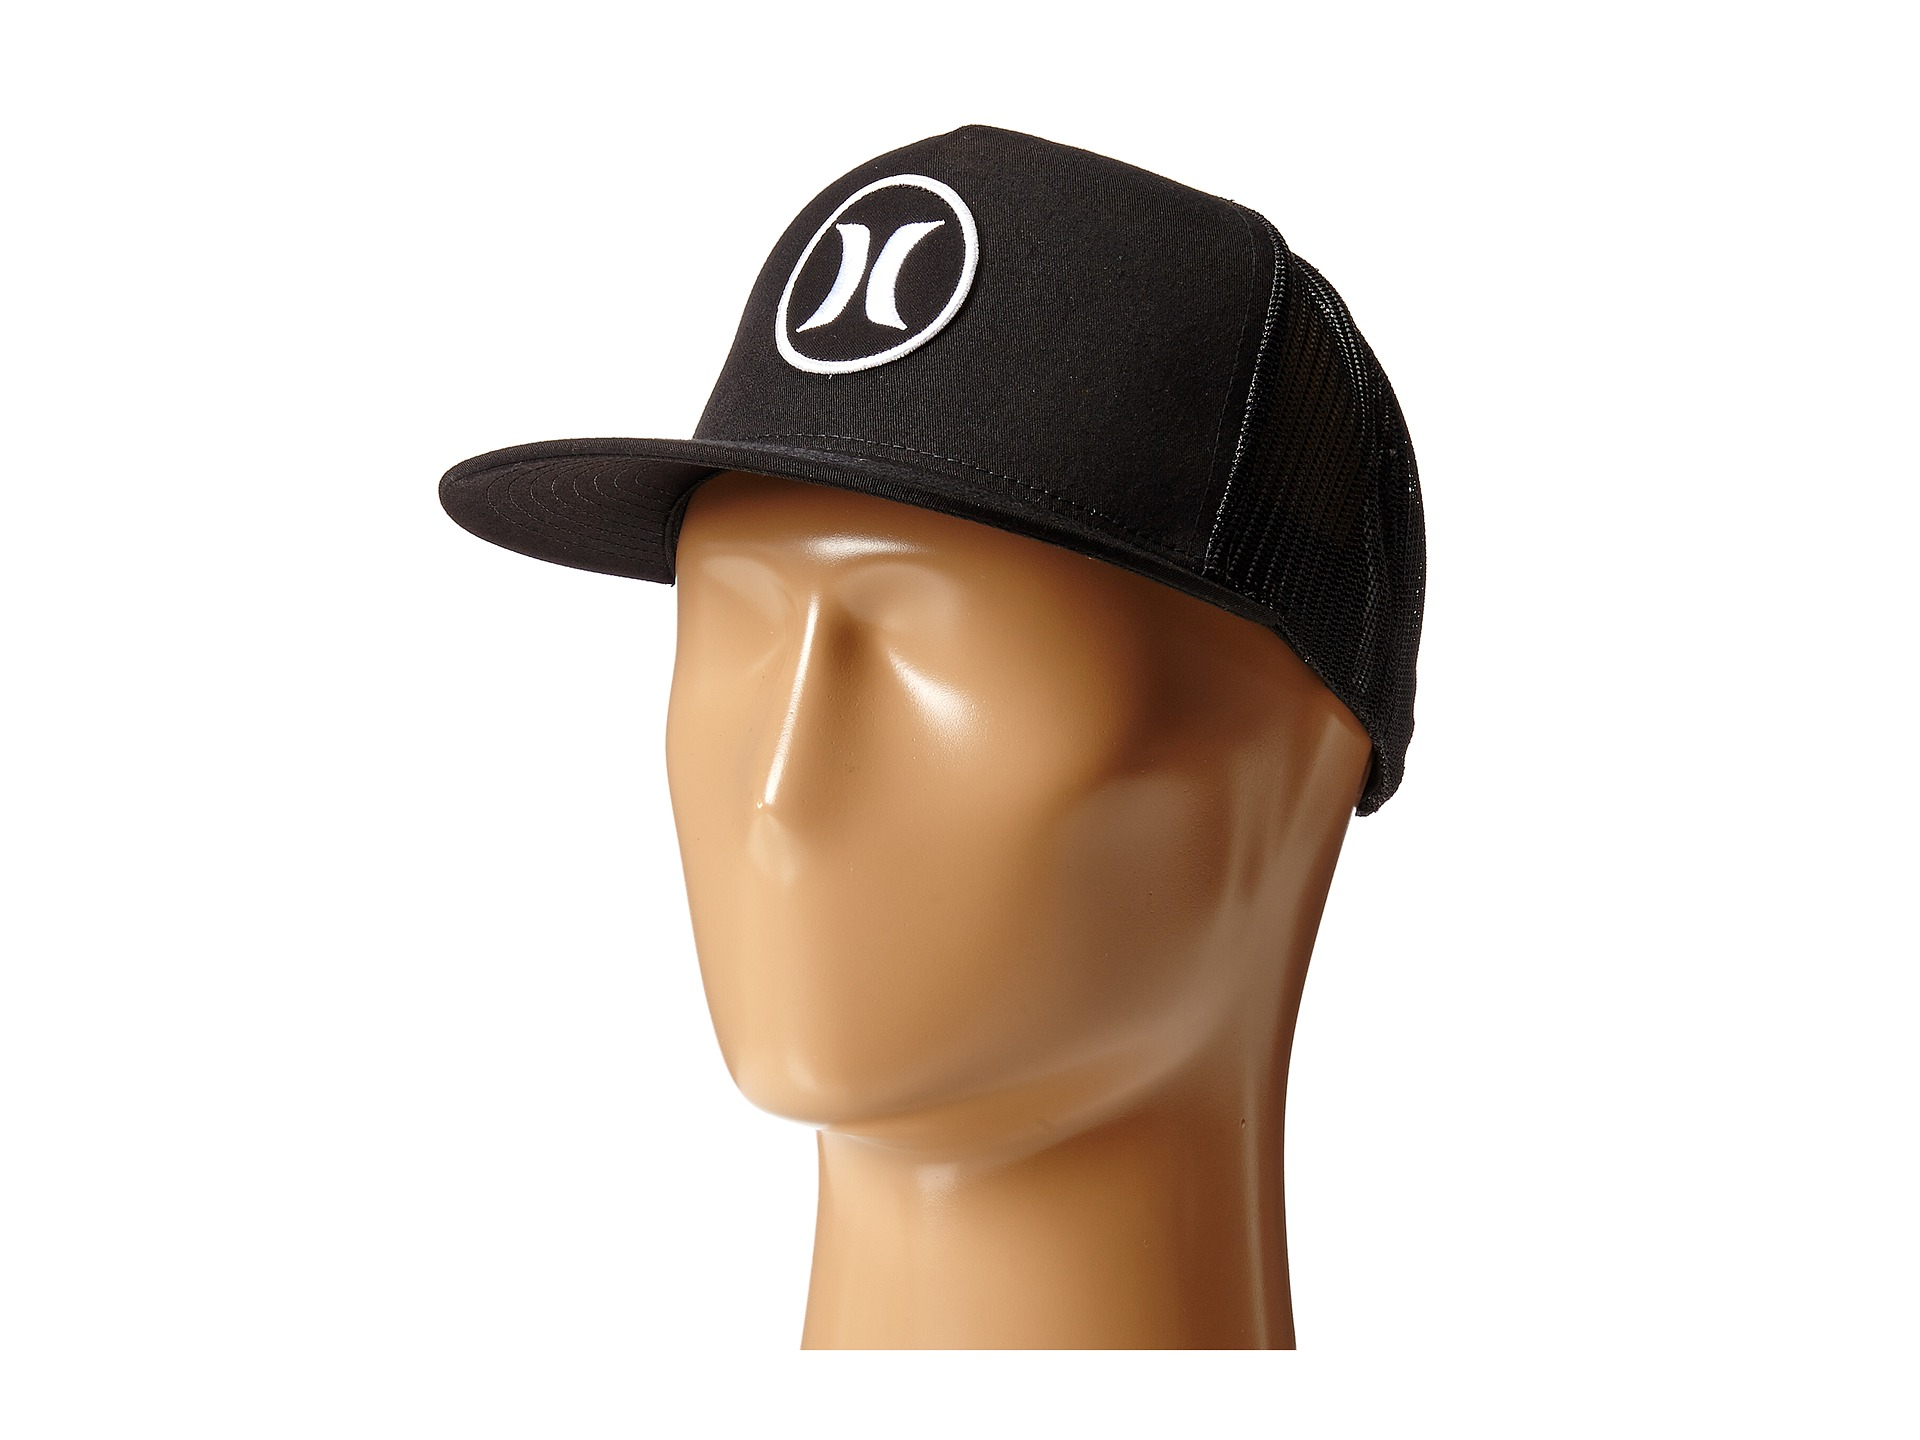 online store 3efa2 b8e76 ... order lyst hurley block party movement trucker hat in black for men  b42ad fa598